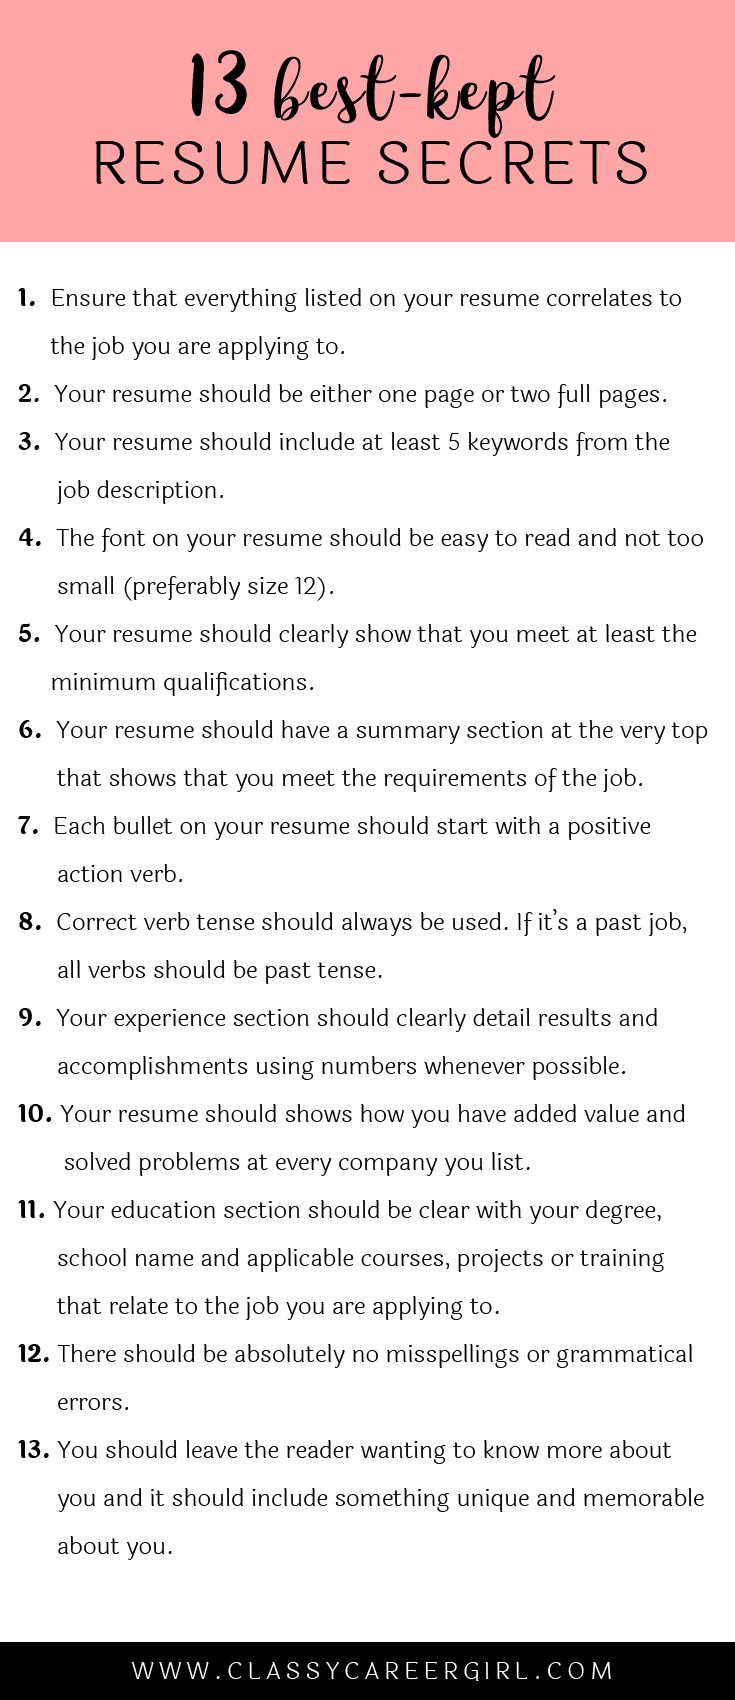 Opposenewapstandardsus  Nice  Ideas About Resume On Pinterest  Cv Format Resume Cv And  With Extraordinary Some Hiring Managers Will Toss Your Resume Out If You Dont Know These  With Delectable Sas Programmer Resume Also Proper Format For A Resume In Addition Food And Beverage Manager Resume And Resume For Retail Manager As Well As Resume Follow Up Additionally Instructor Resume From Pinterestcom With Opposenewapstandardsus  Extraordinary  Ideas About Resume On Pinterest  Cv Format Resume Cv And  With Delectable Some Hiring Managers Will Toss Your Resume Out If You Dont Know These  And Nice Sas Programmer Resume Also Proper Format For A Resume In Addition Food And Beverage Manager Resume From Pinterestcom